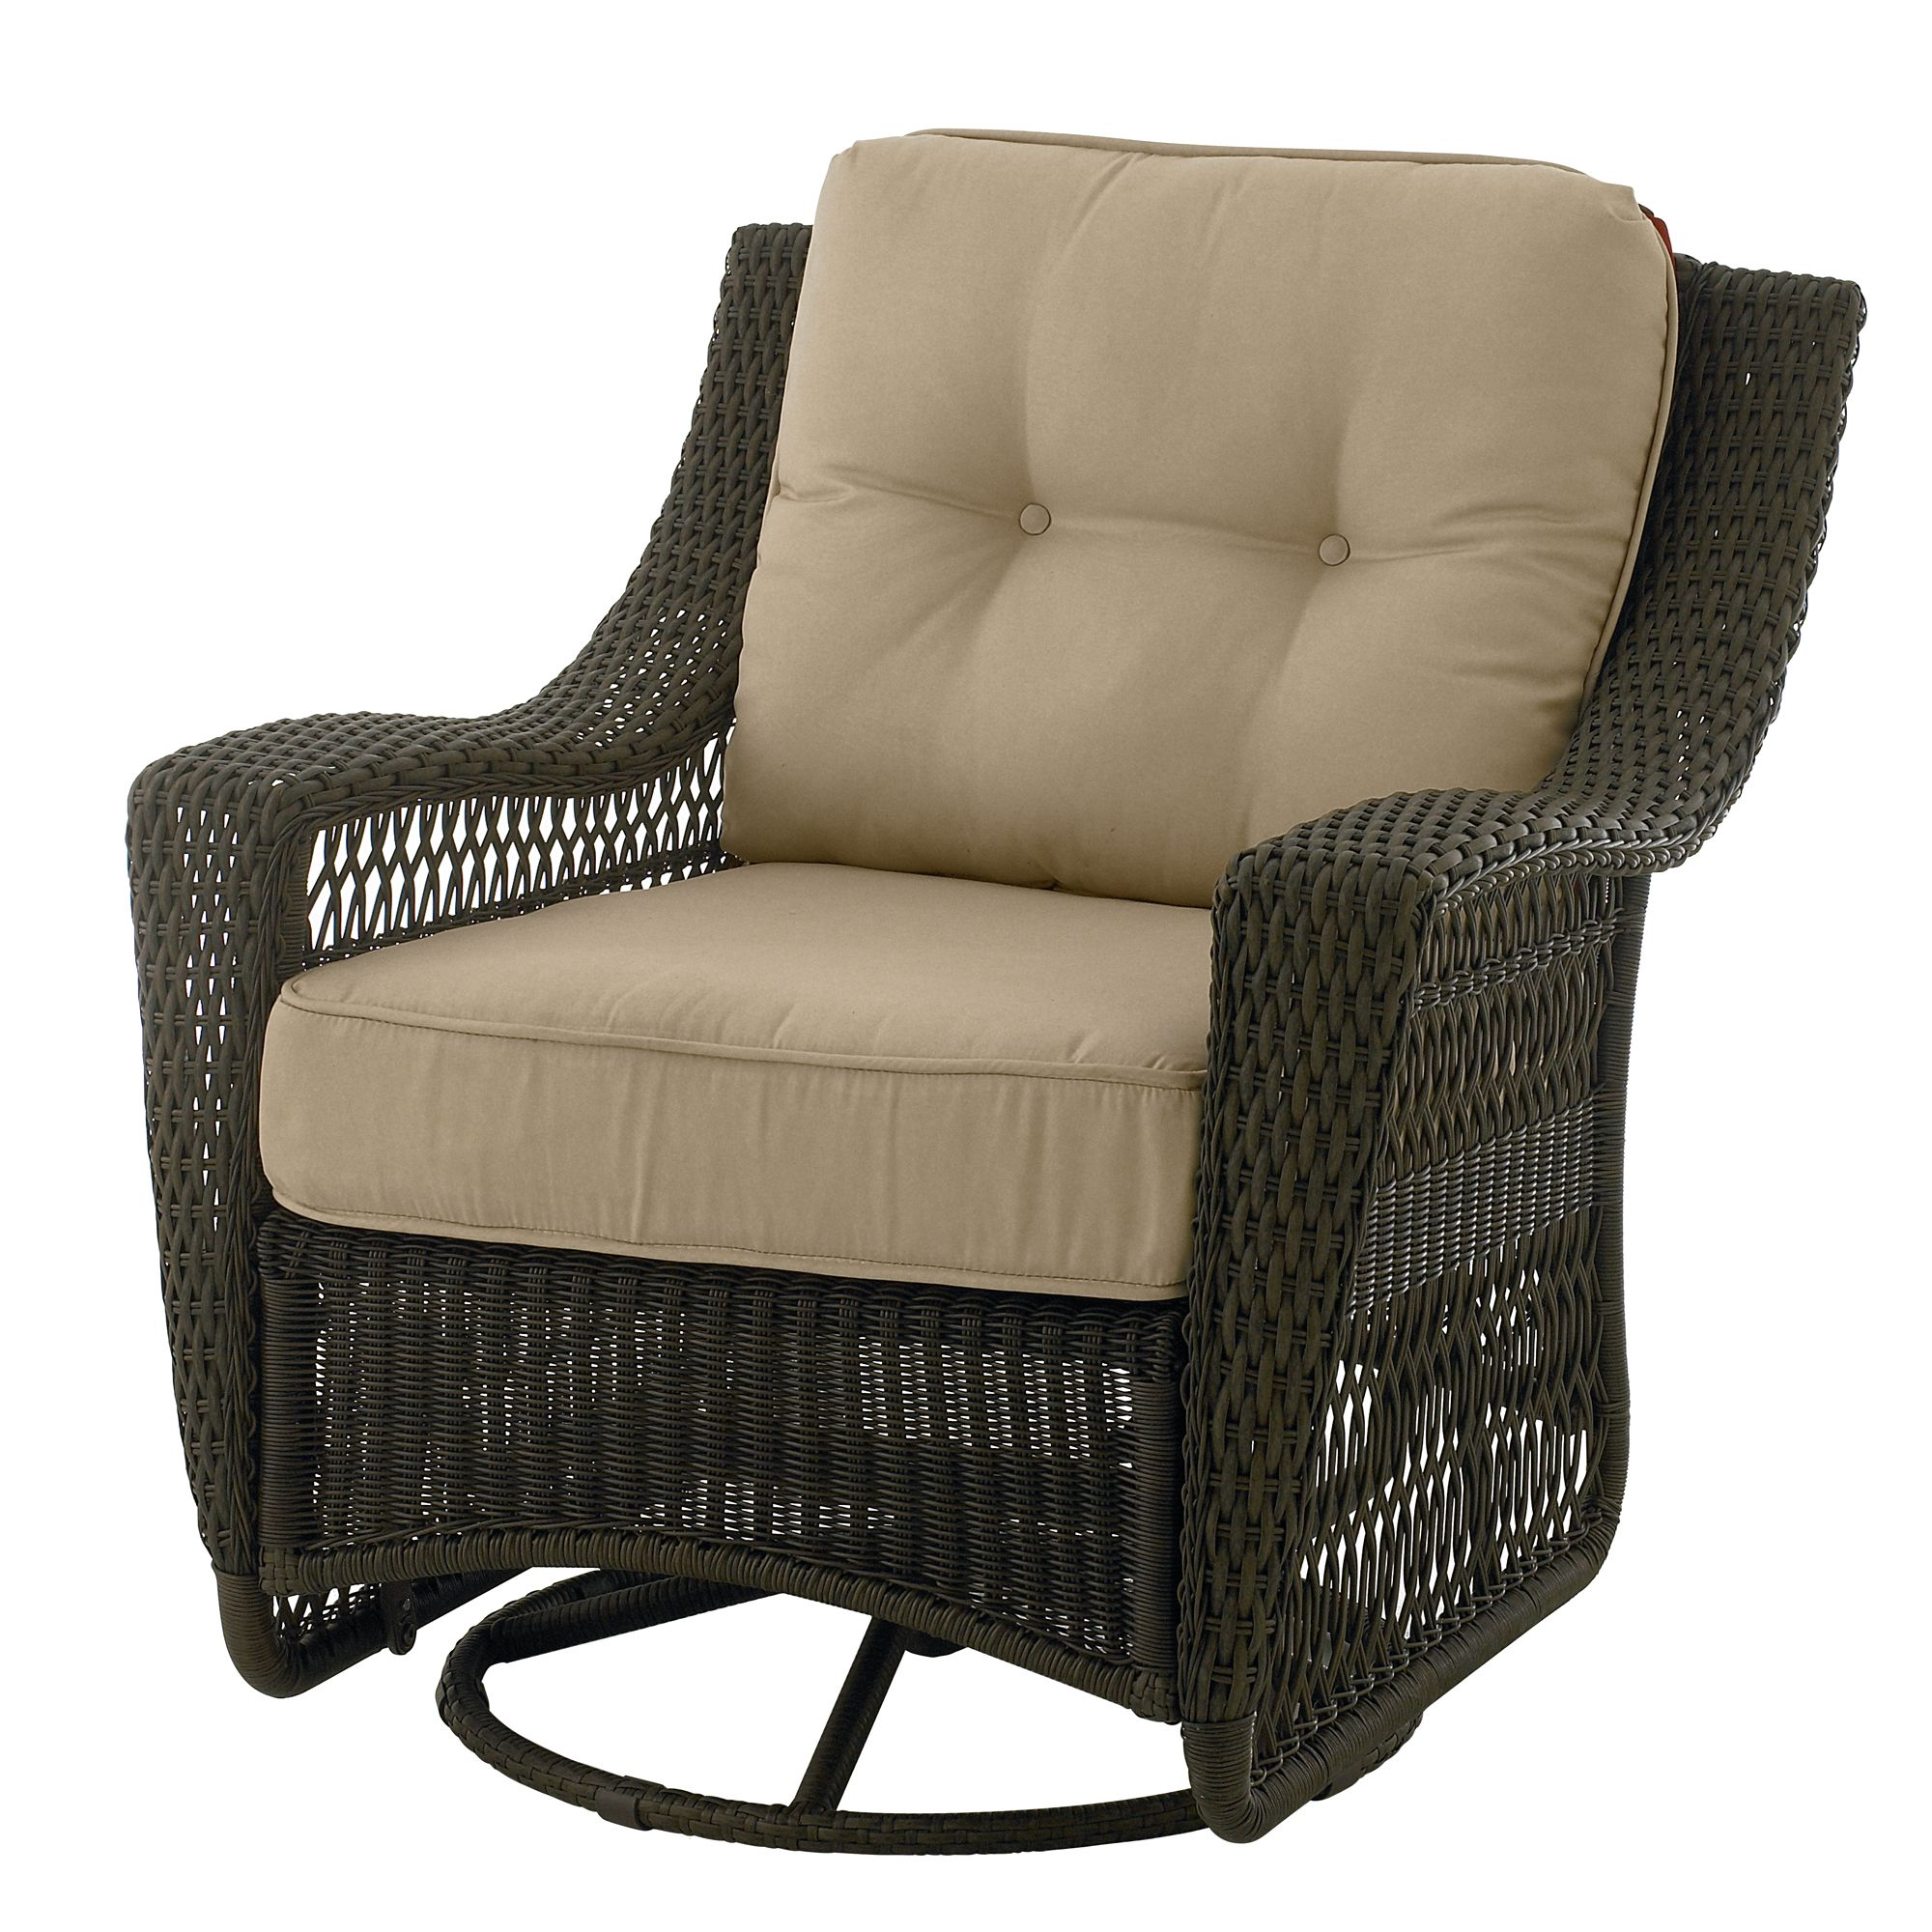 Country Living - 65-50974 44 Concord Swivel Glider Patio